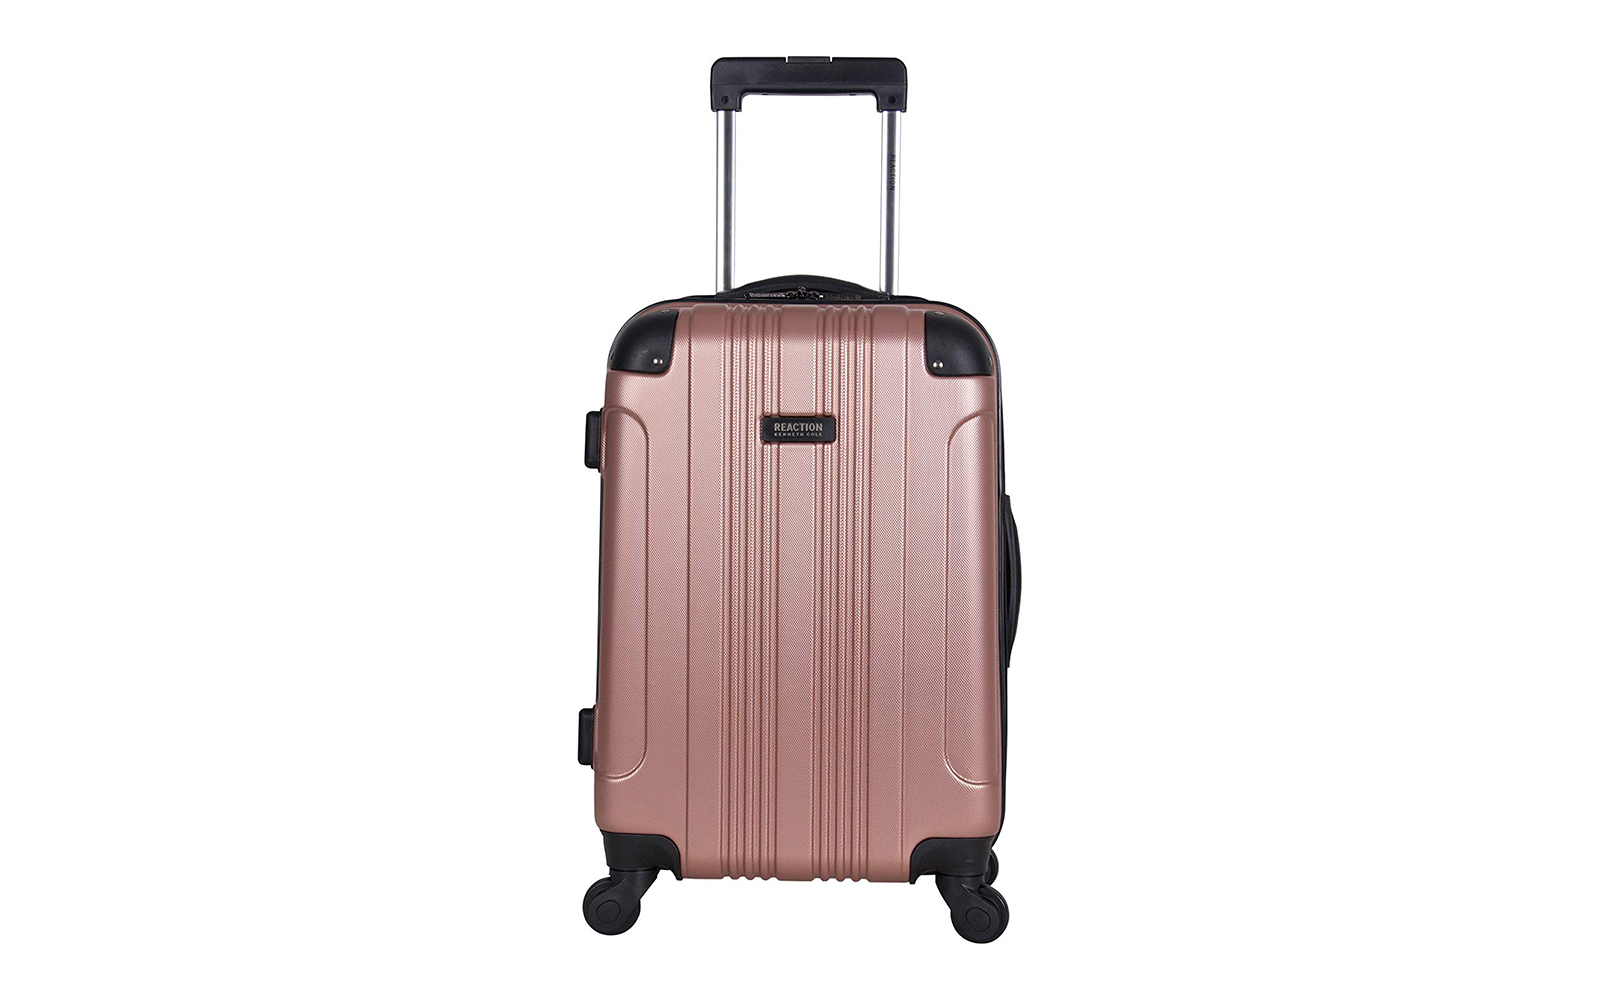 Kenneth Cole Reaction Out Of Bounds 20-Inch Carry-On Lightweight Durable Hardshell 4-Wheel Spinner